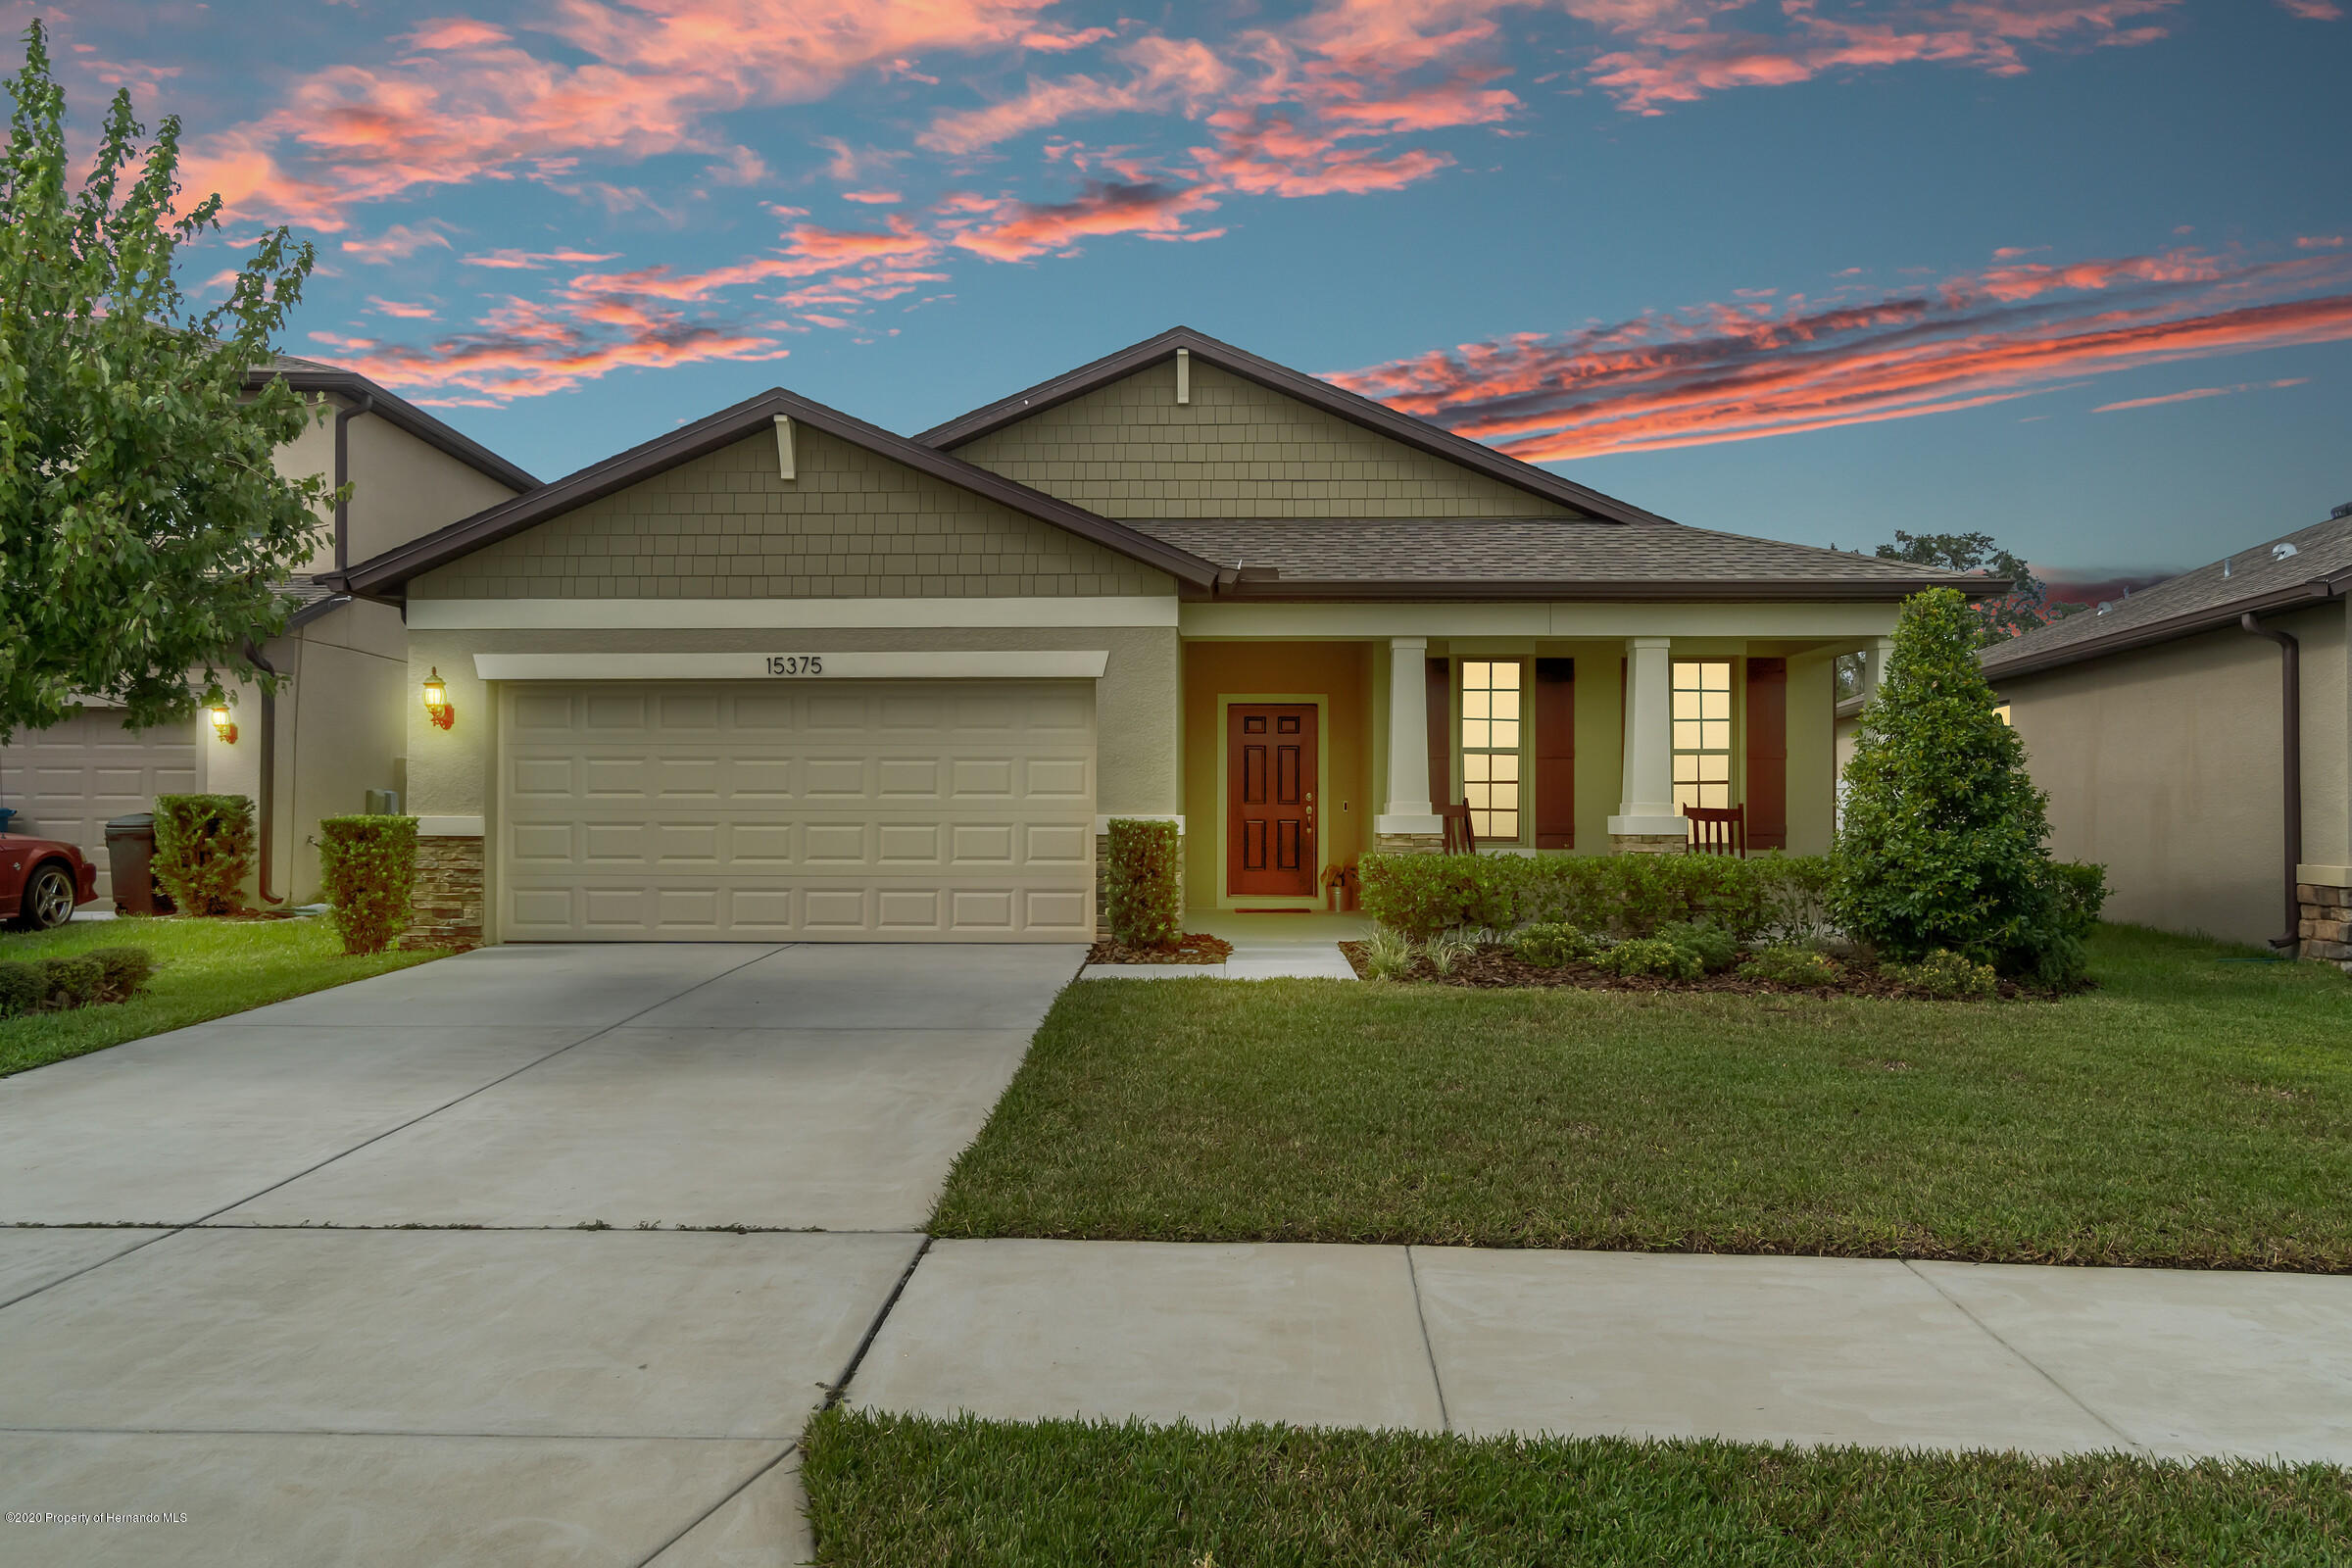 Details for 15375 Stone House Drive, Brooksville, FL 34604